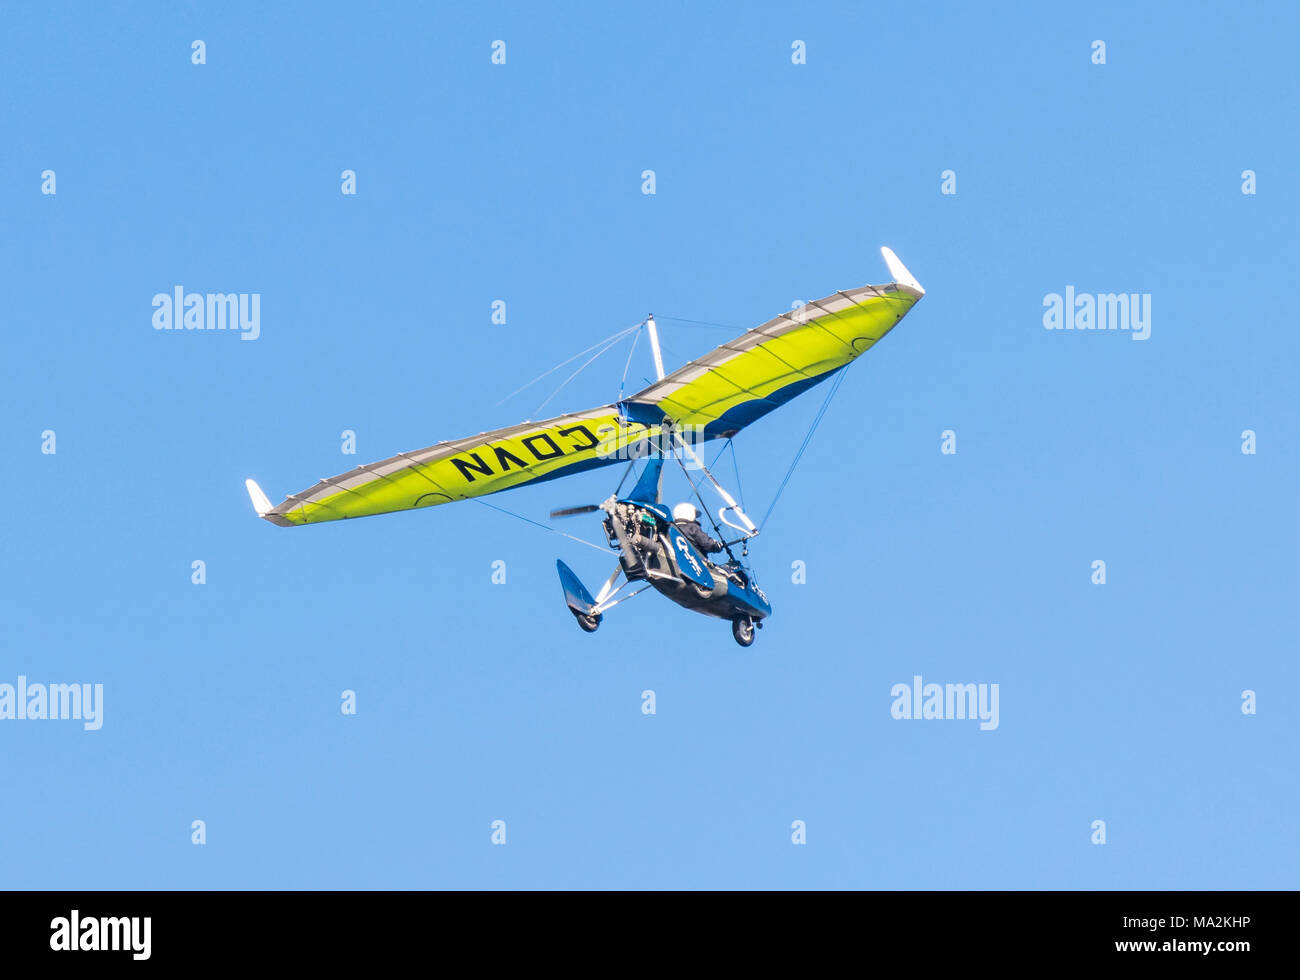 Flying in a single engine microlight aircraft. - Stock Image